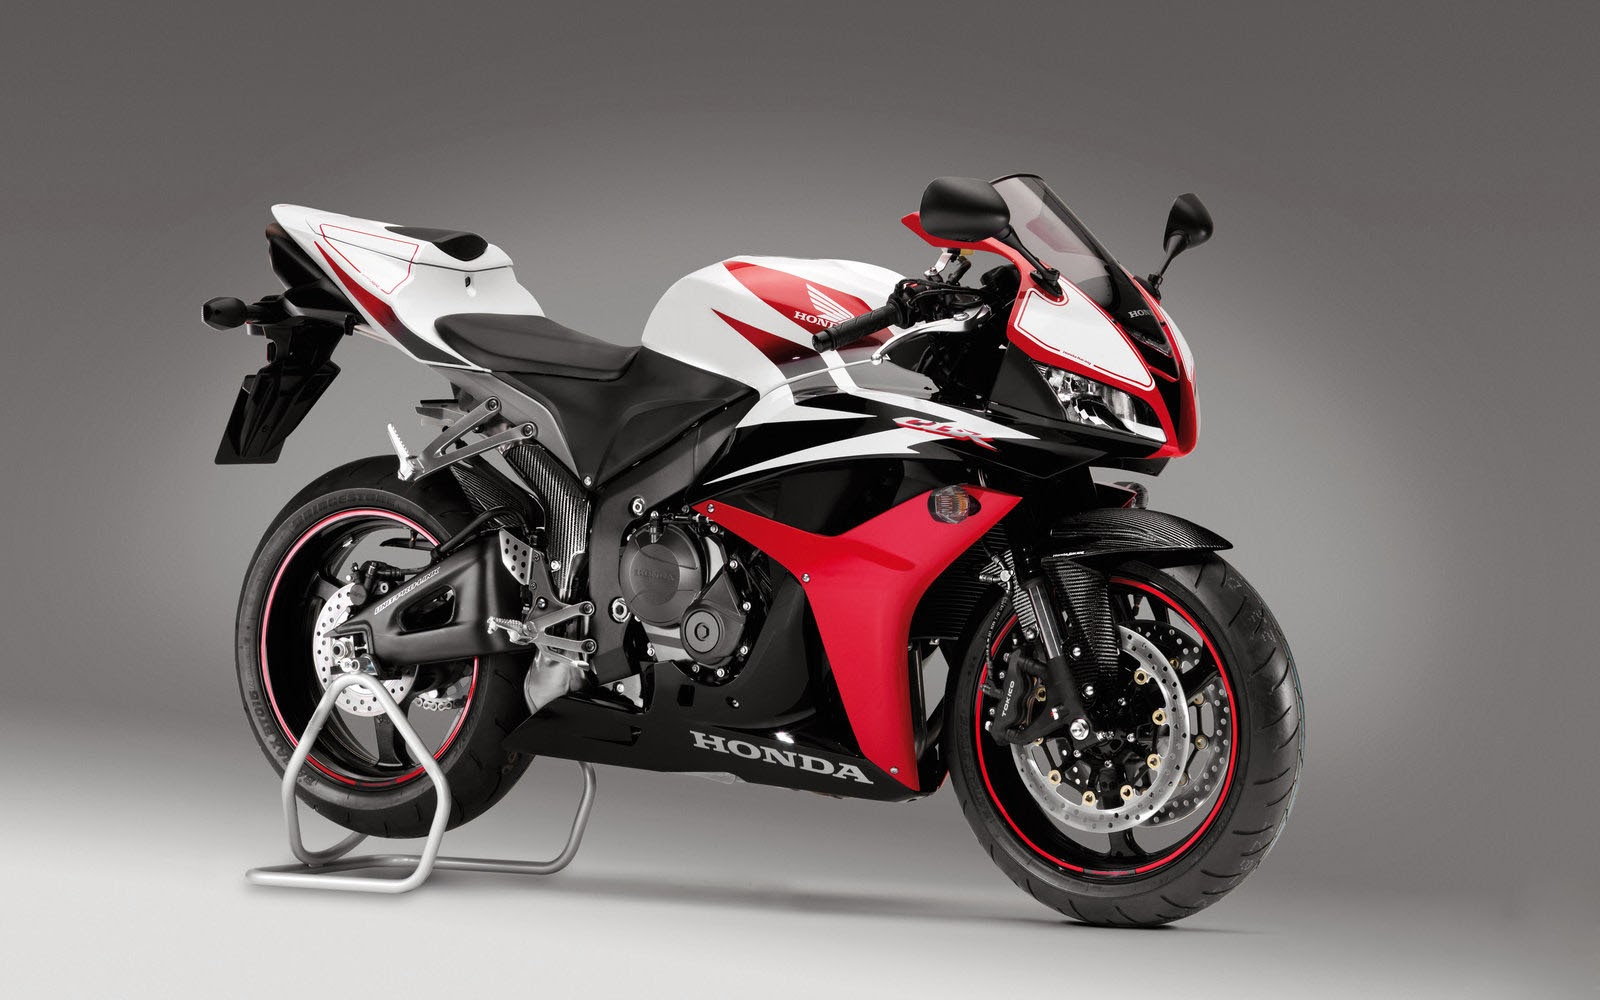 Windows 7 3d Desktop Wallpapers Free Download Wallpapers Honda Cbr 600rr Wallpapers